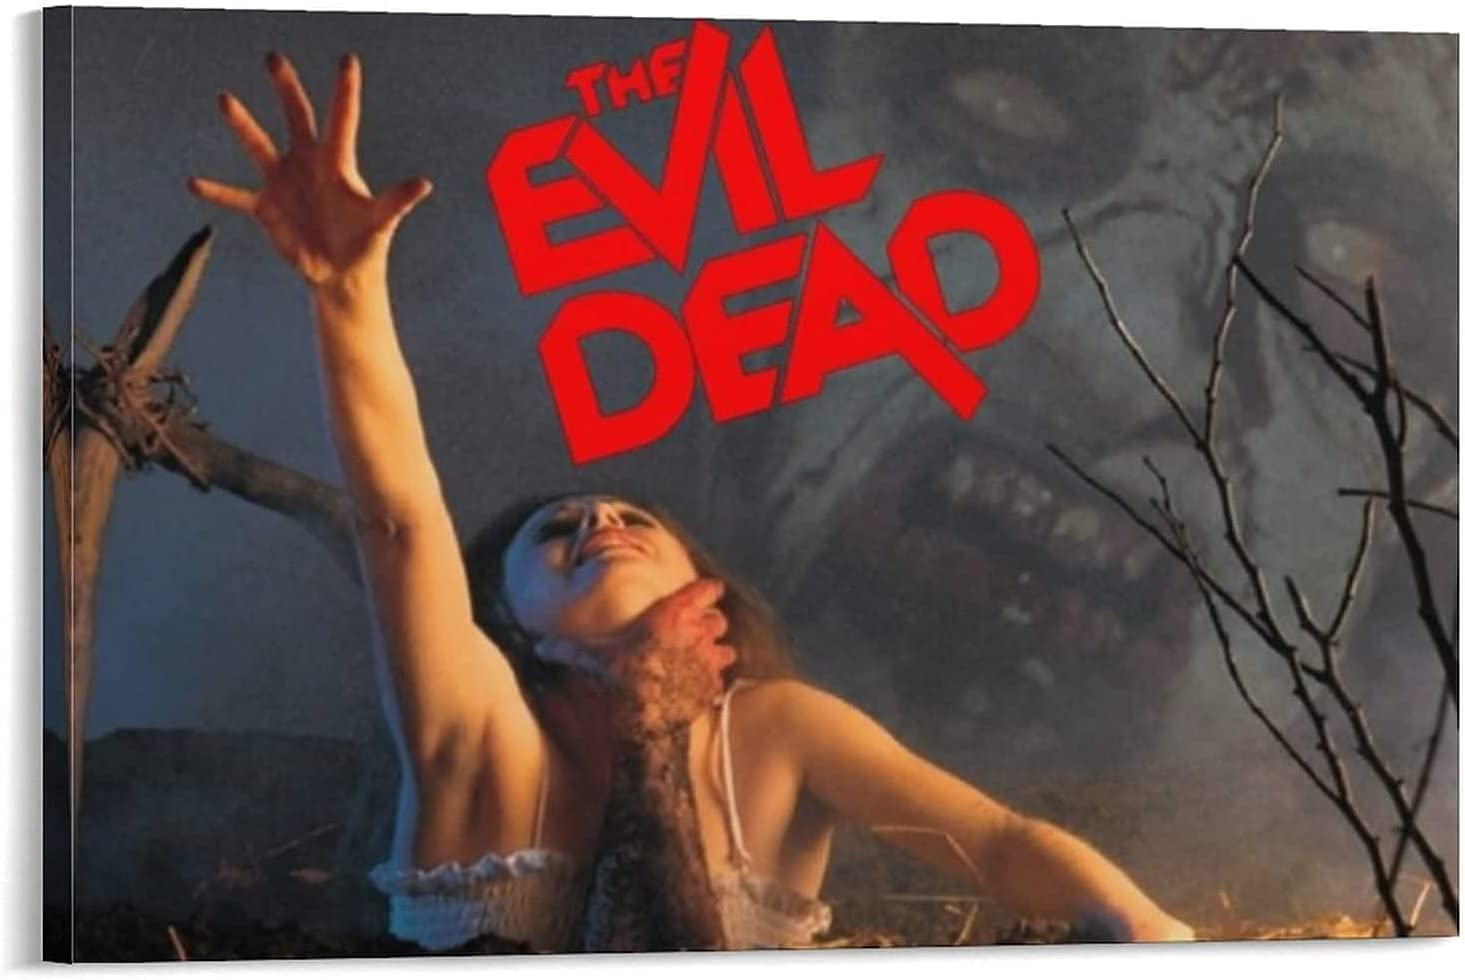 Movie The Evil Dead Painting And Prints Moder New mail Cheap mail order specialty store order Posters Decorative